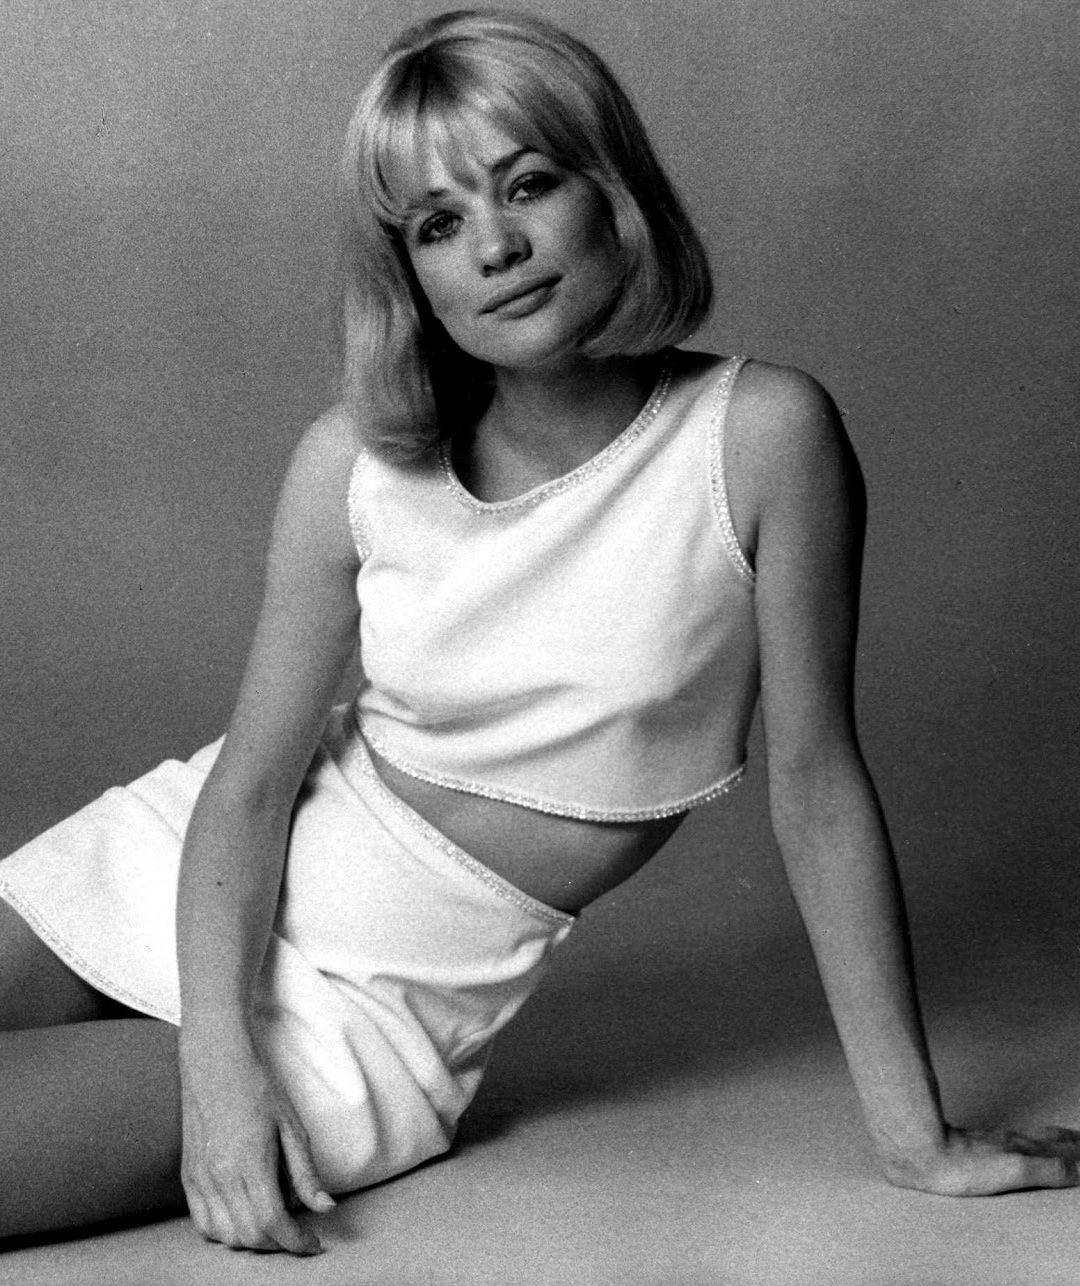 judy geeson where is she now